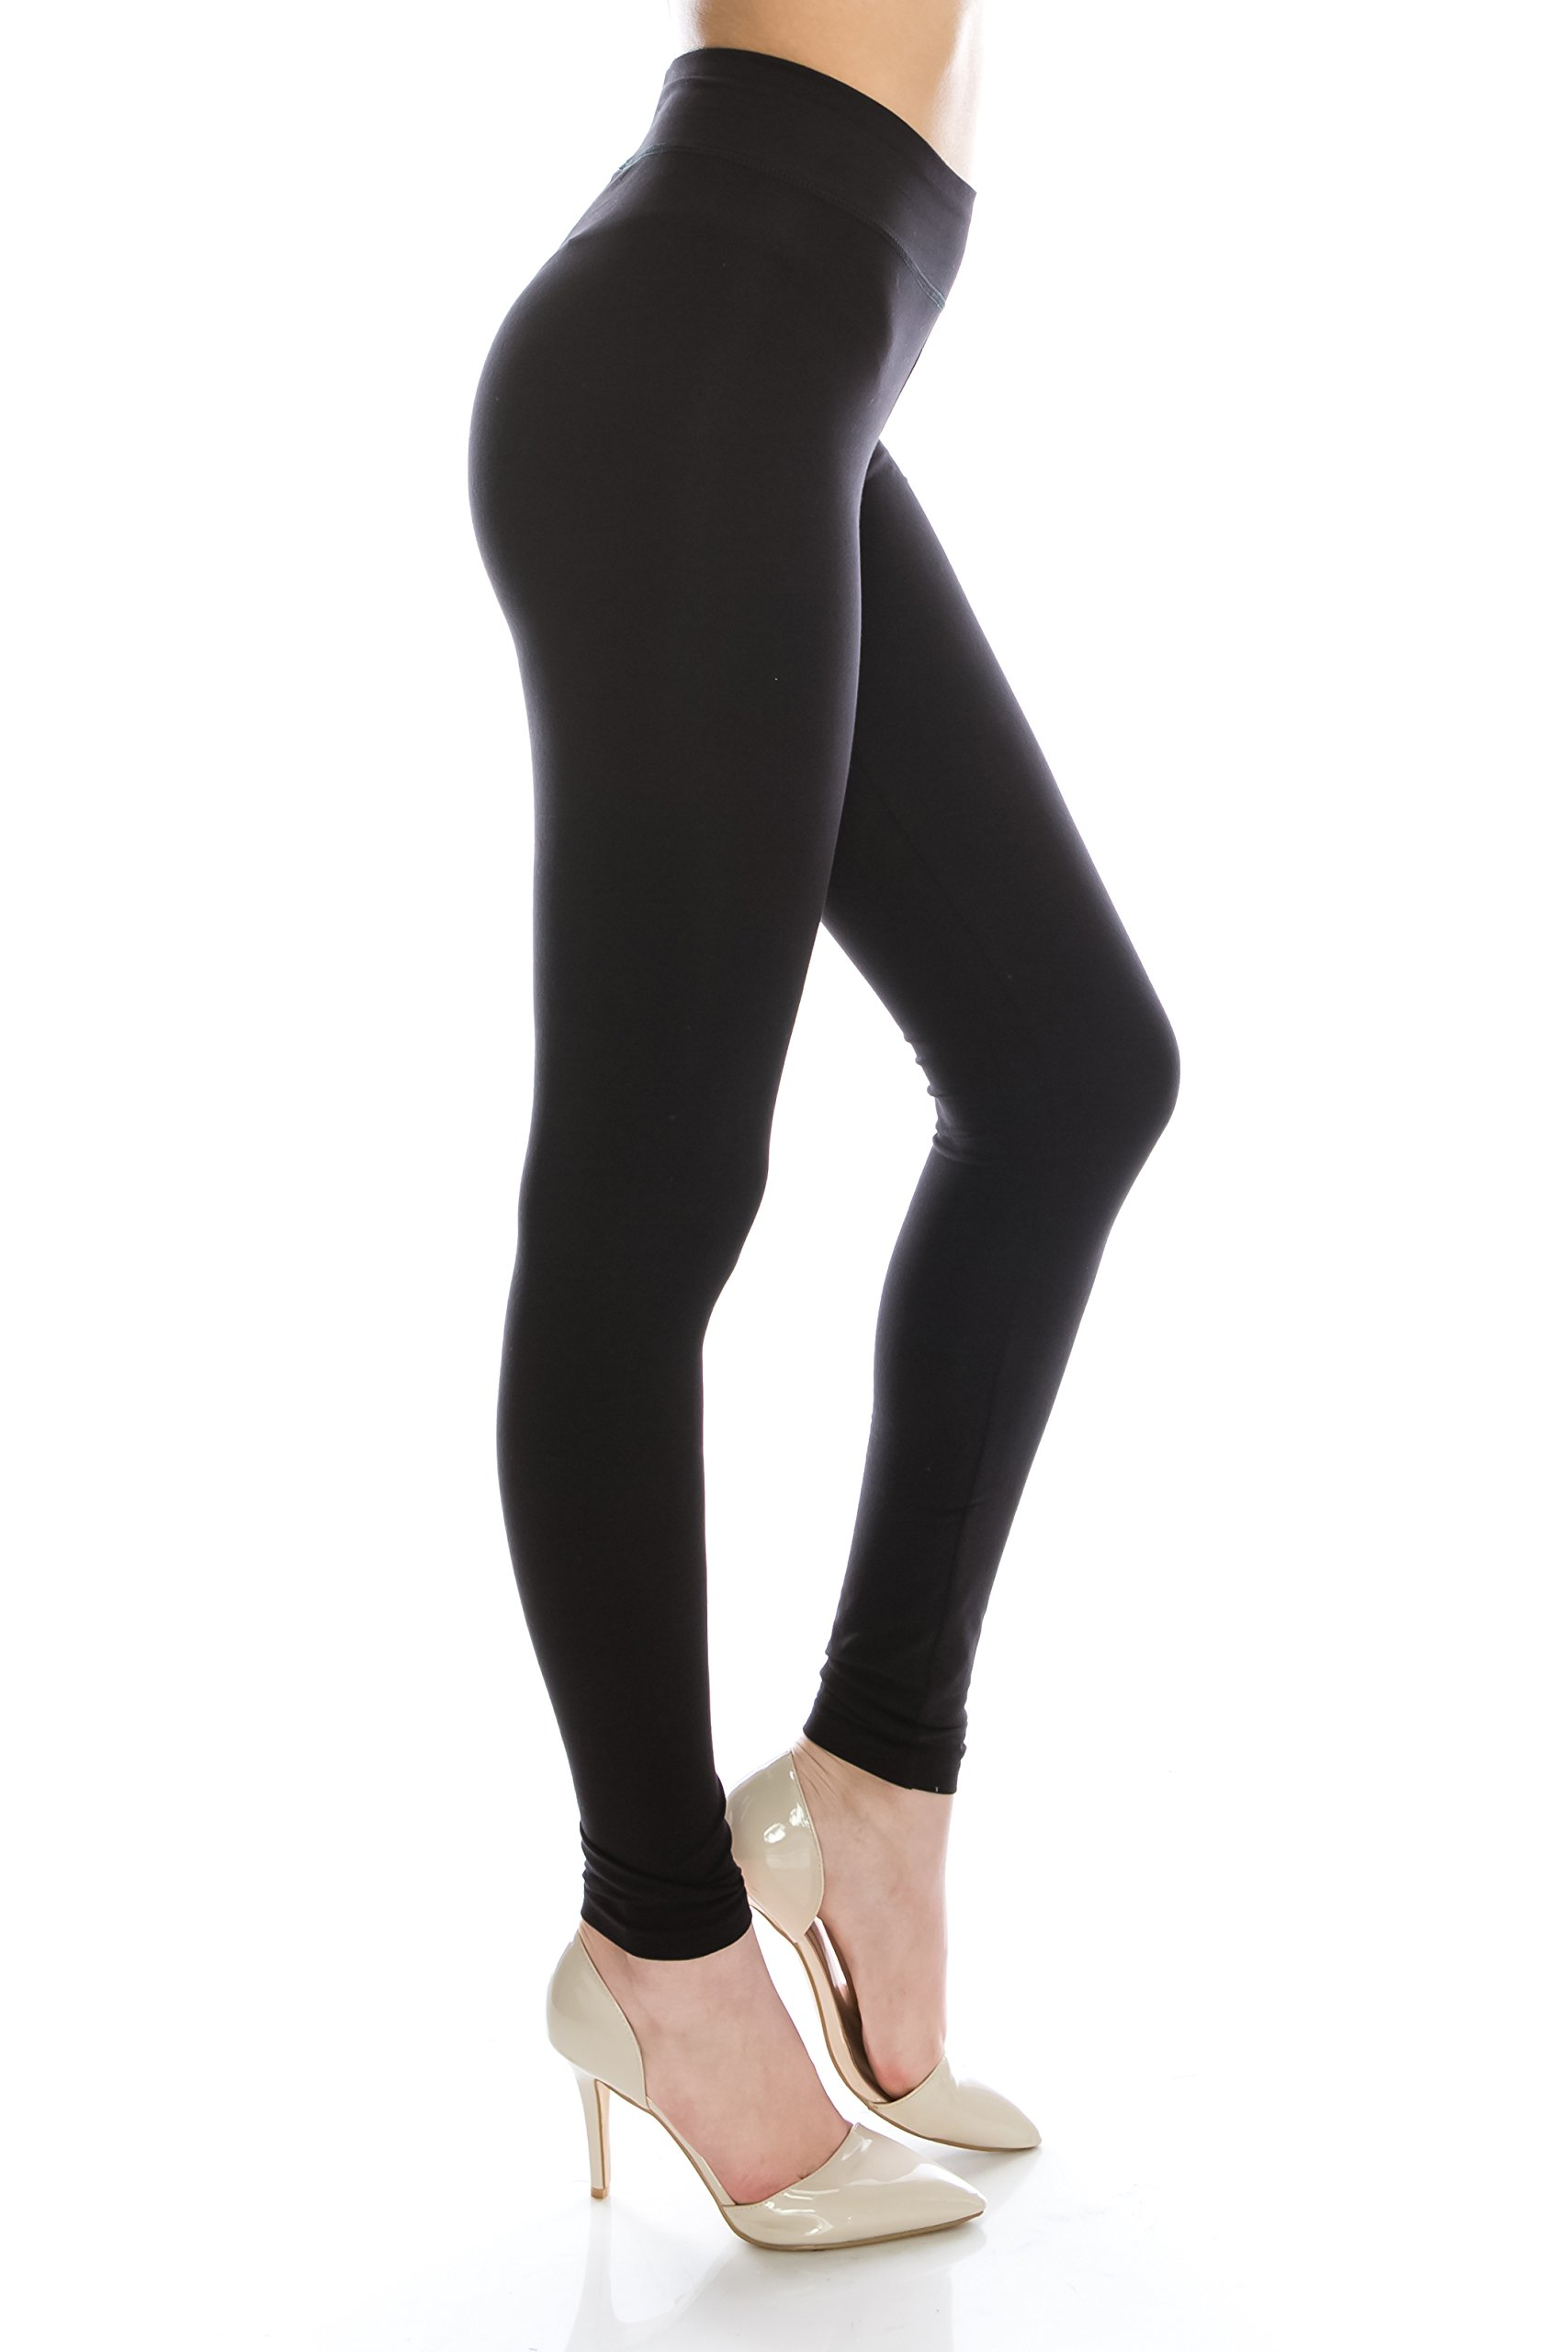 EttelLut Cotton Spandex Basic leggings for women sport prime Black S